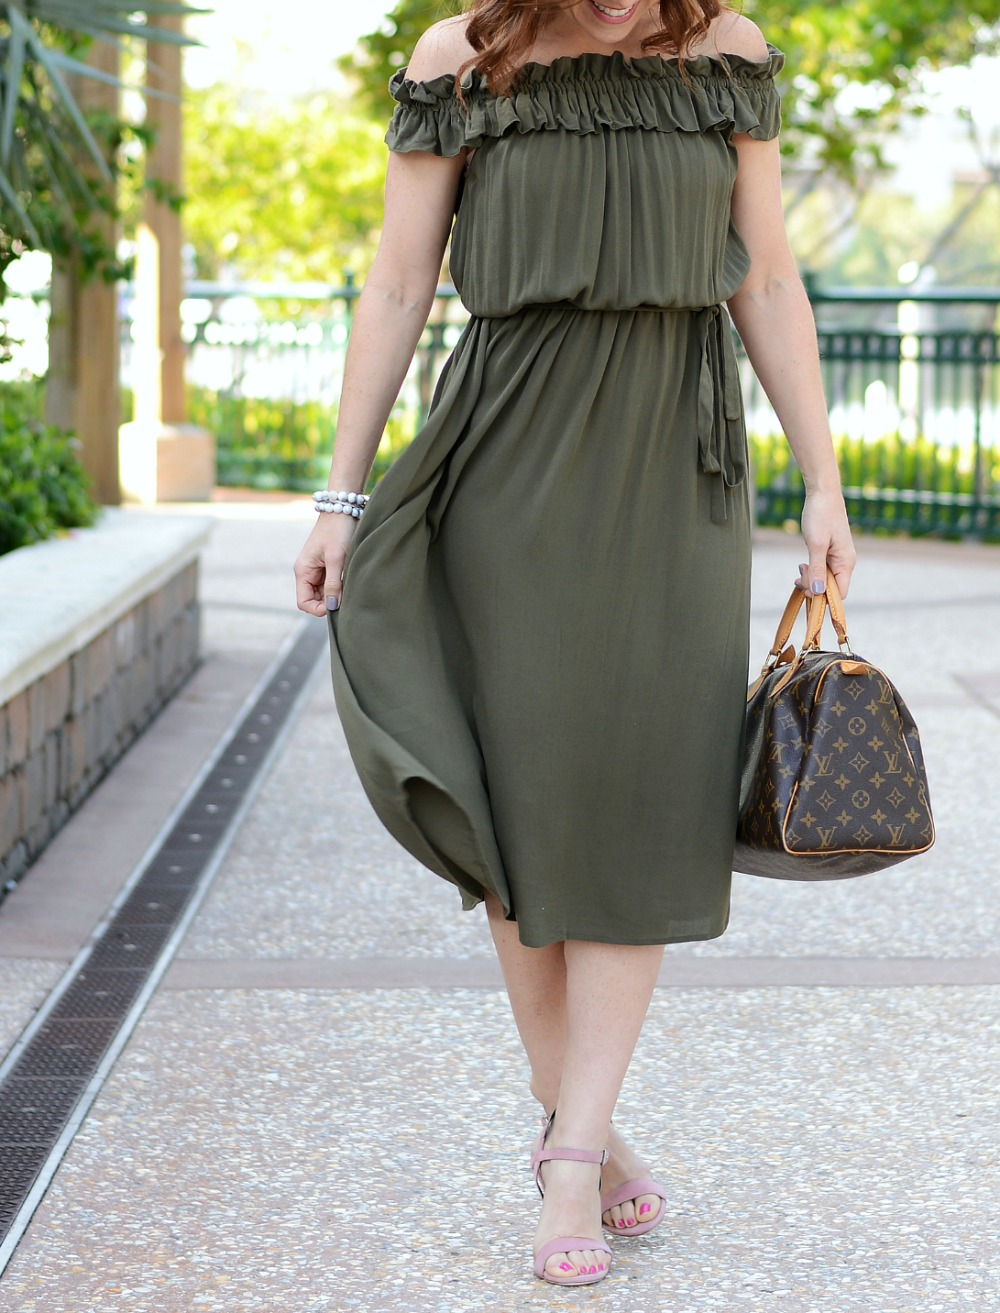 Midi Dress style on a petite girl (and why it's fun to embrace new styles! // the modern savvy - Embracing New Styles with a Who What Wear midi dress featured by popular Florida fashion blogger, The Modern Savvy